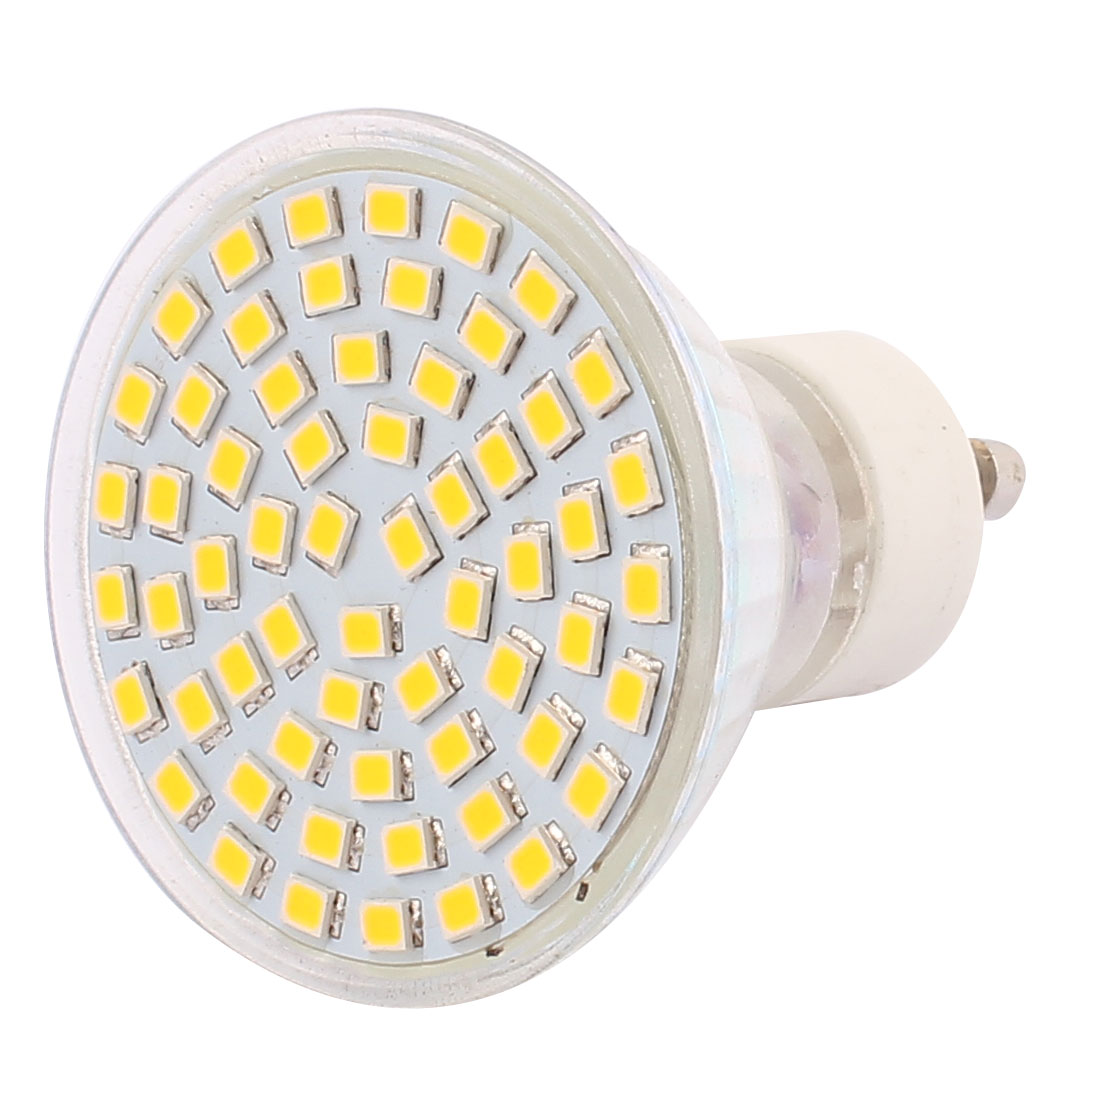 220V GU10 LED Light 6W 2835 SMD 60 LEDs Spotlight Down Lamp Bulb Lighting Warm White